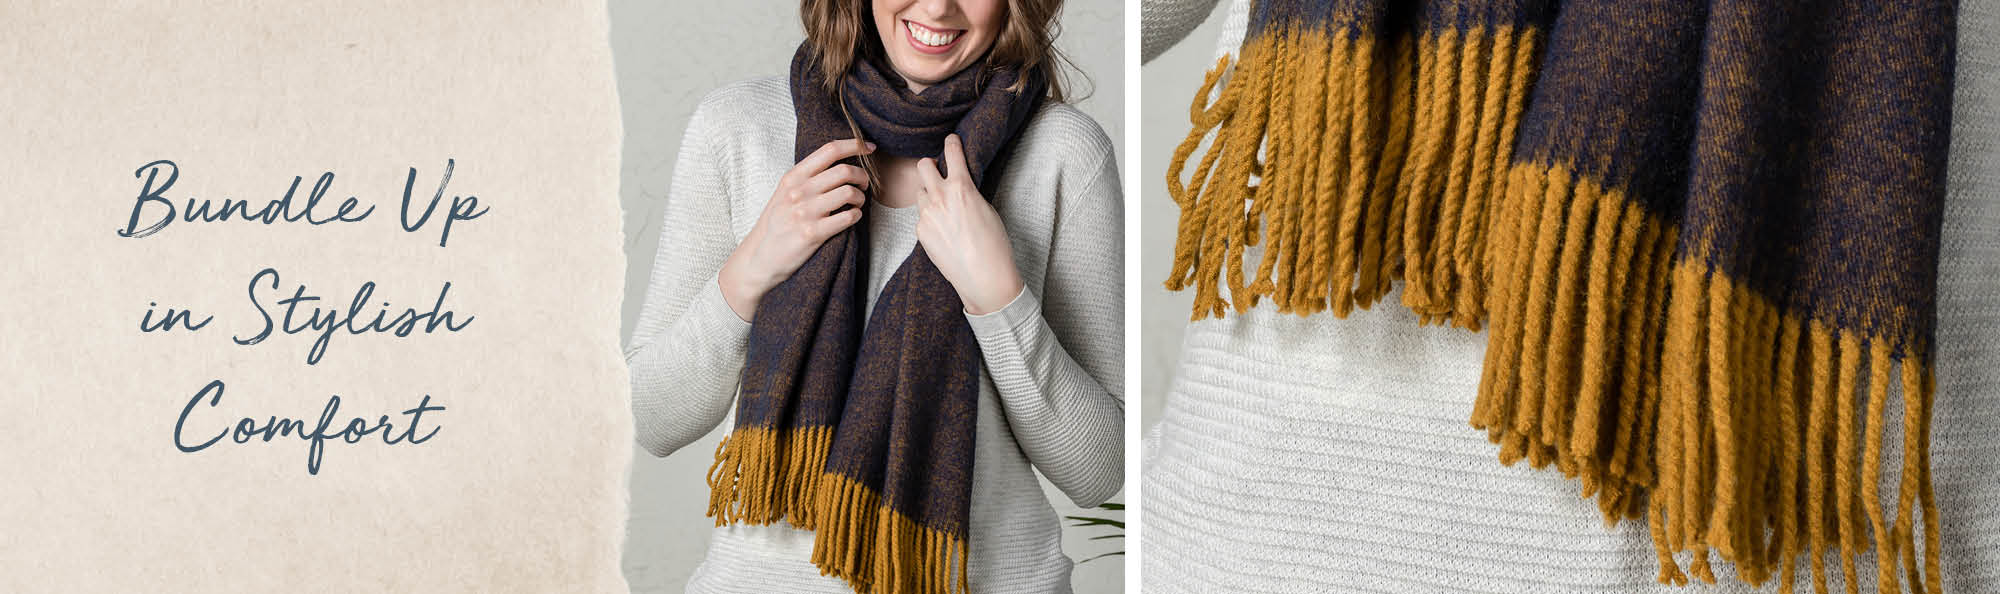 Bundle Up in Stylish Comfort. Woman wearing a dark scarf with gold fringe.